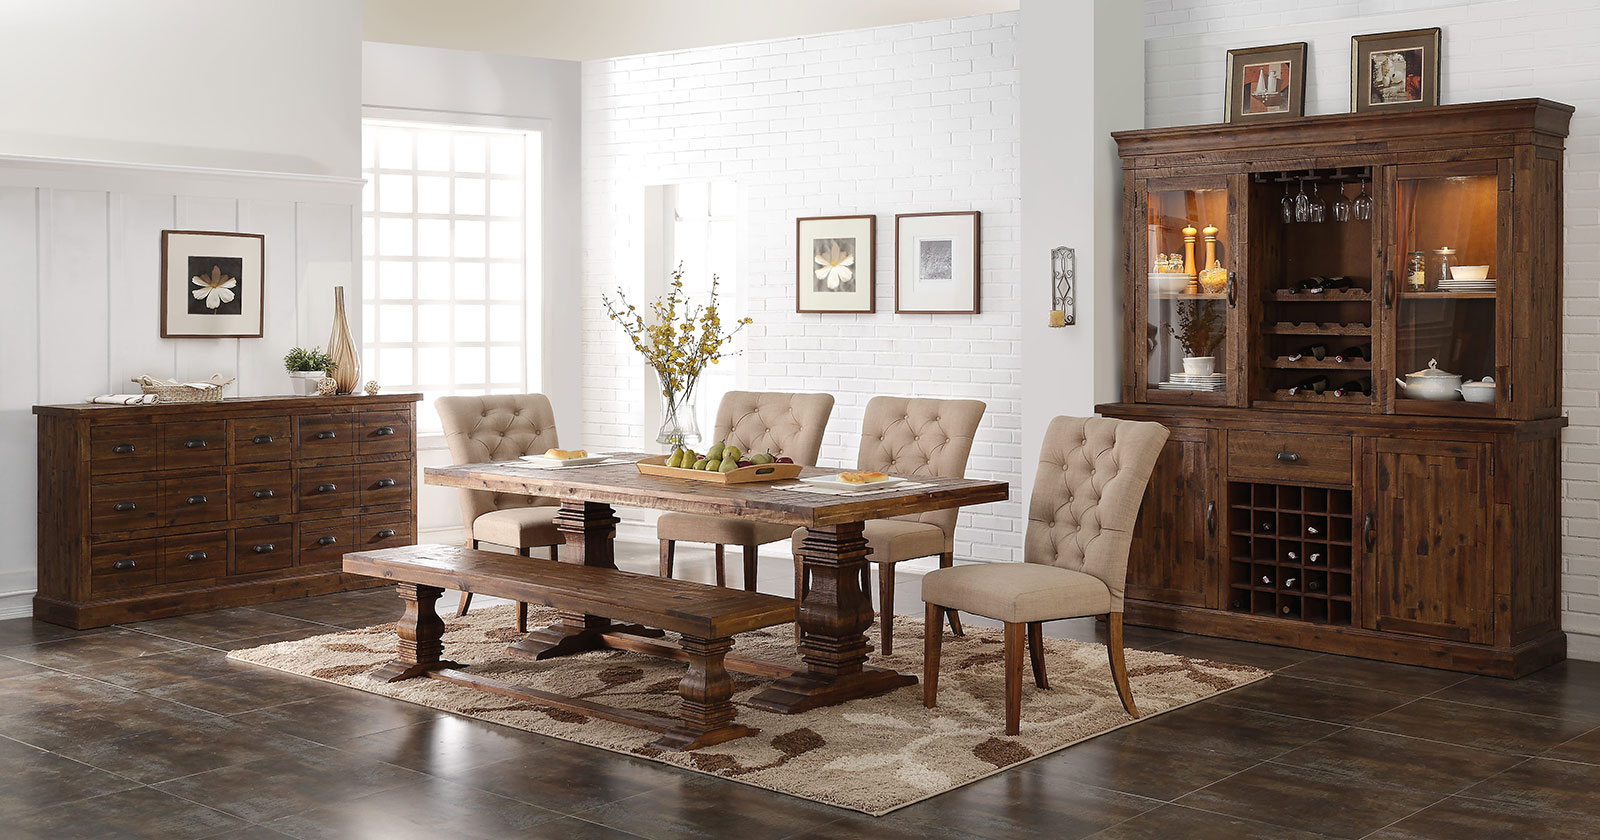 Find dining furniture in Nashville, TN & Knoxville, TN at our furniture store, a wide selection of dining furniture, wood dinettes, and more!